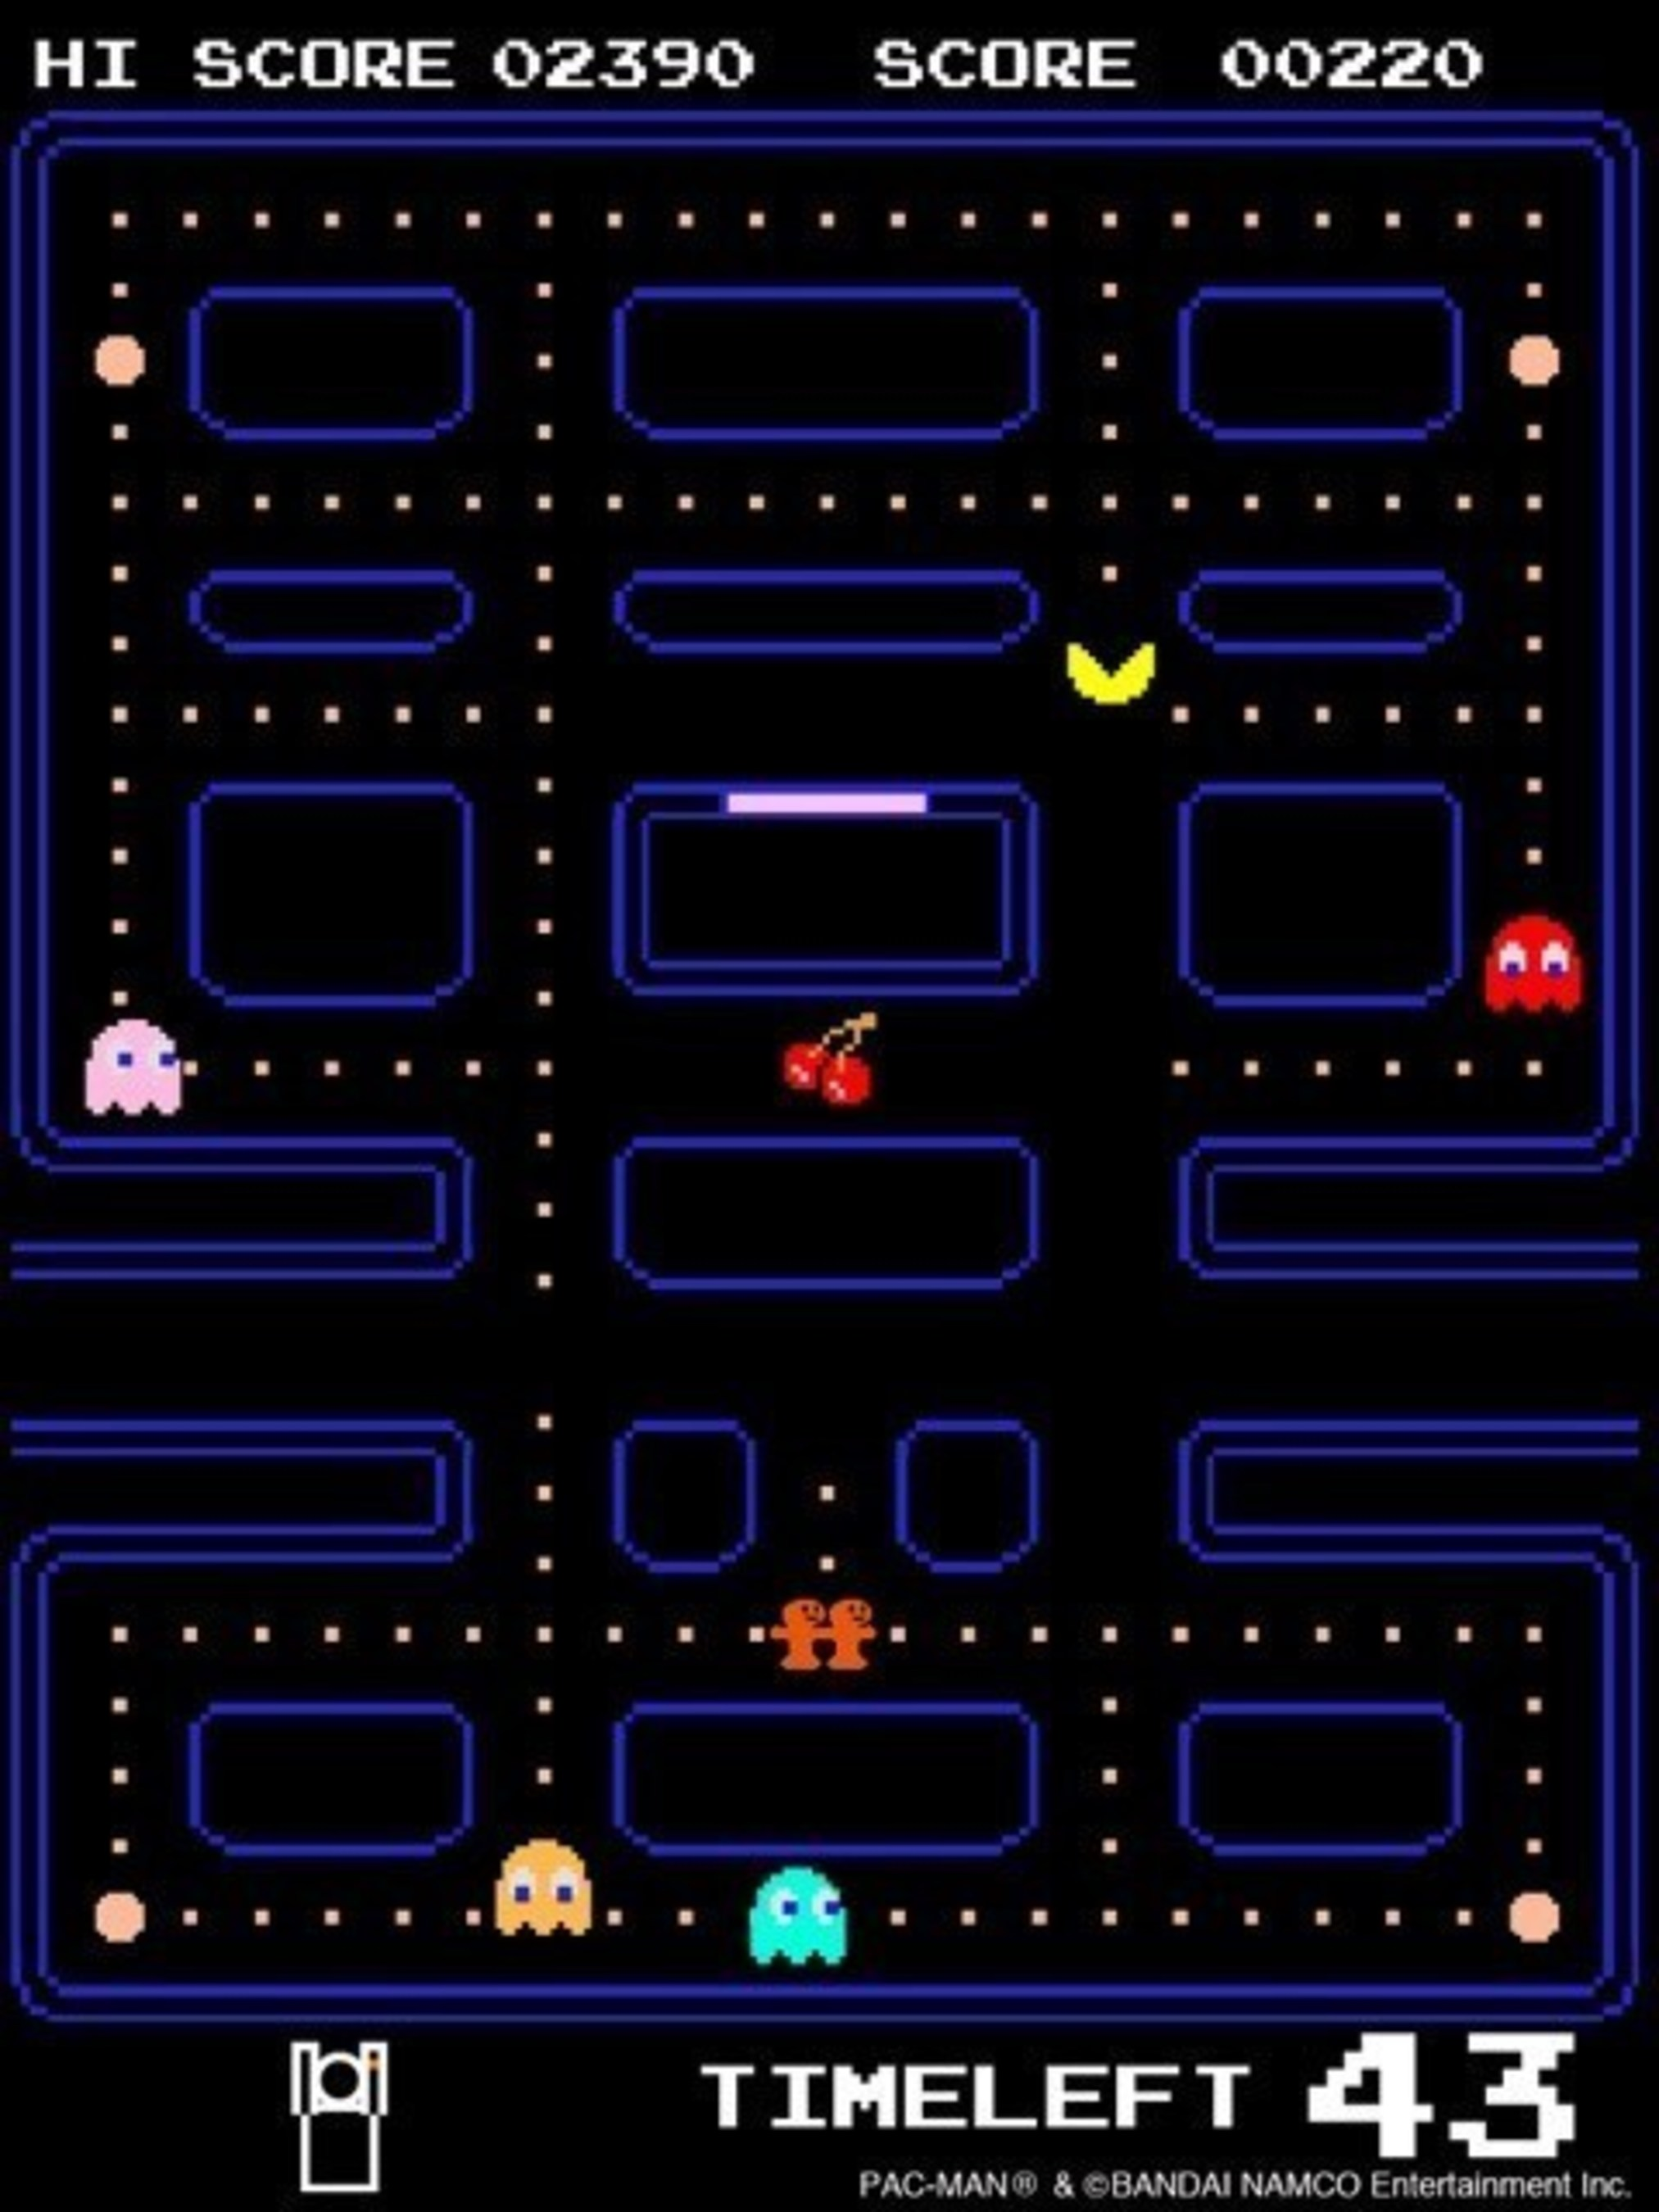 Preview Of The New 'PAC-MAN Powered By Moff' Gamified Fitness App Showcased at The 2016 International Consumer Electronics Show (CES) in Las Vegas, January 6 to 9